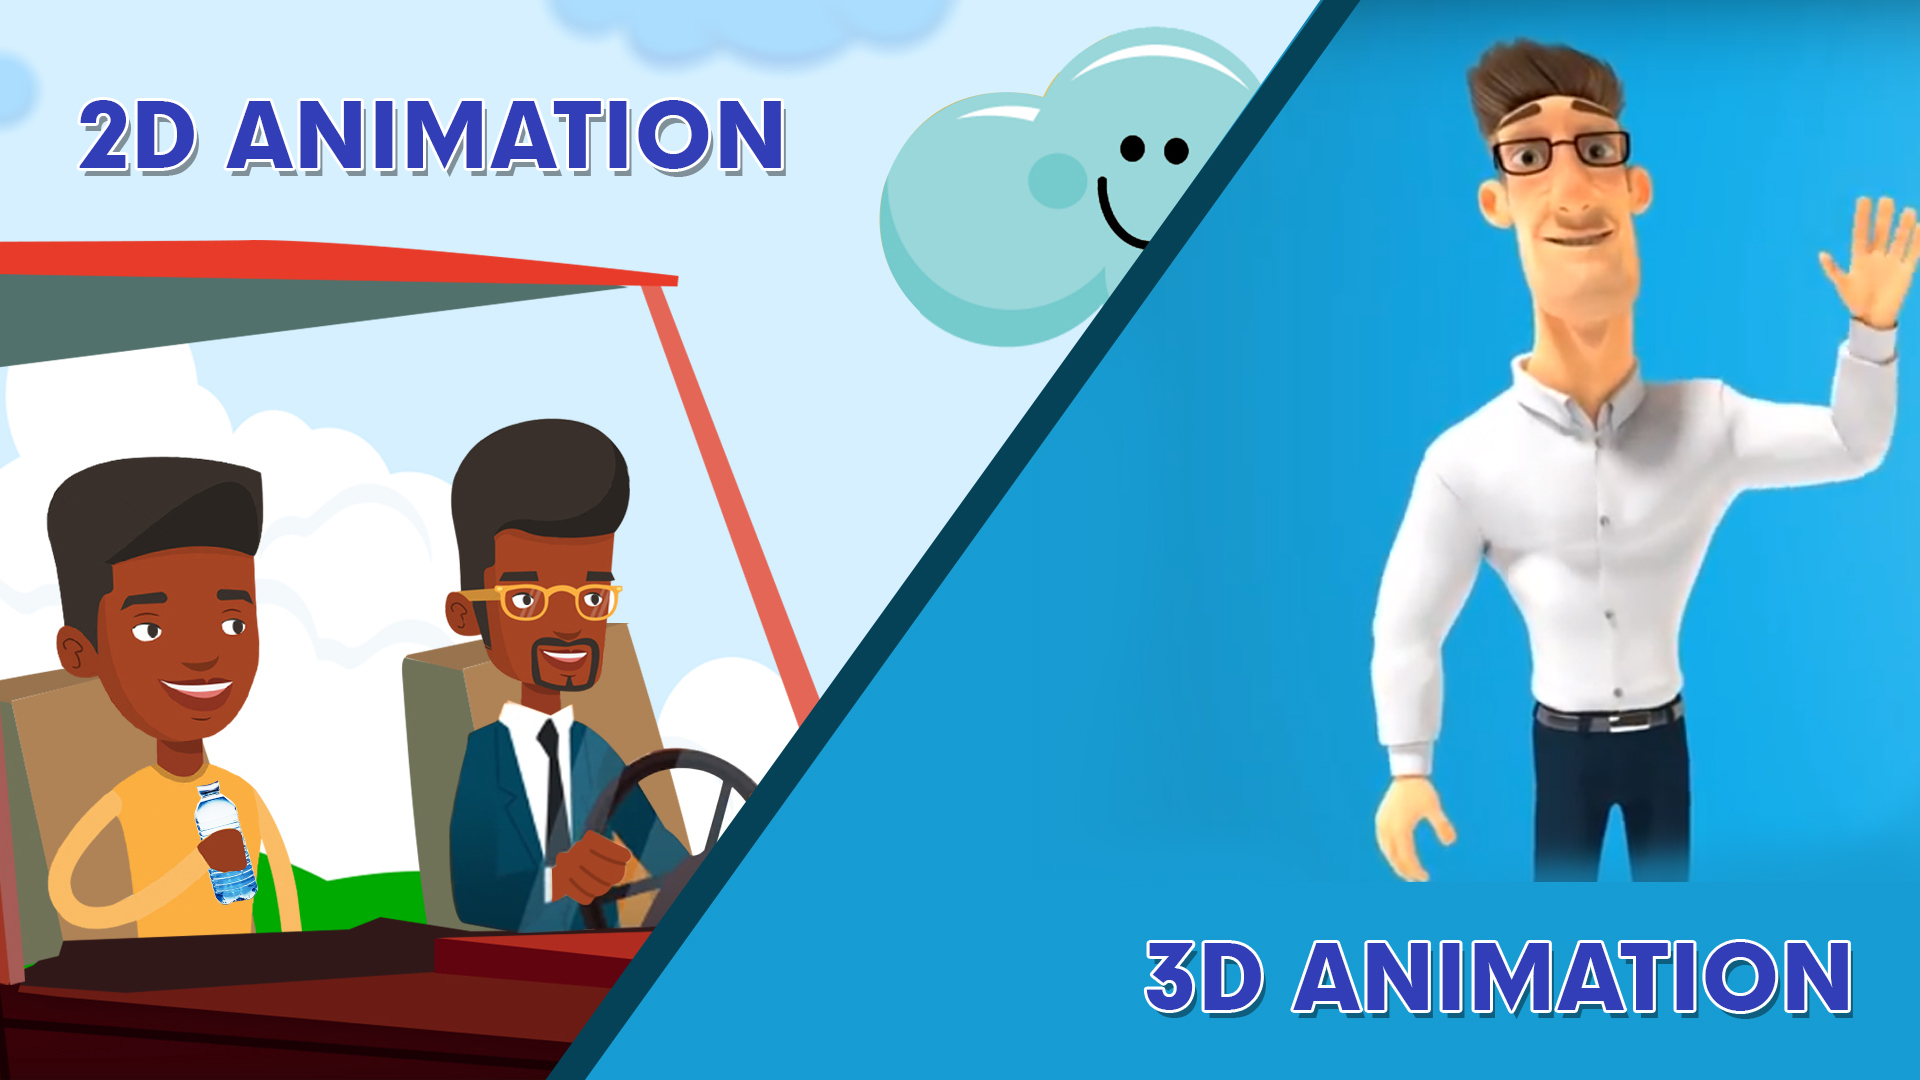 What is the meaning of 2d animation and 3d animation and which one is better